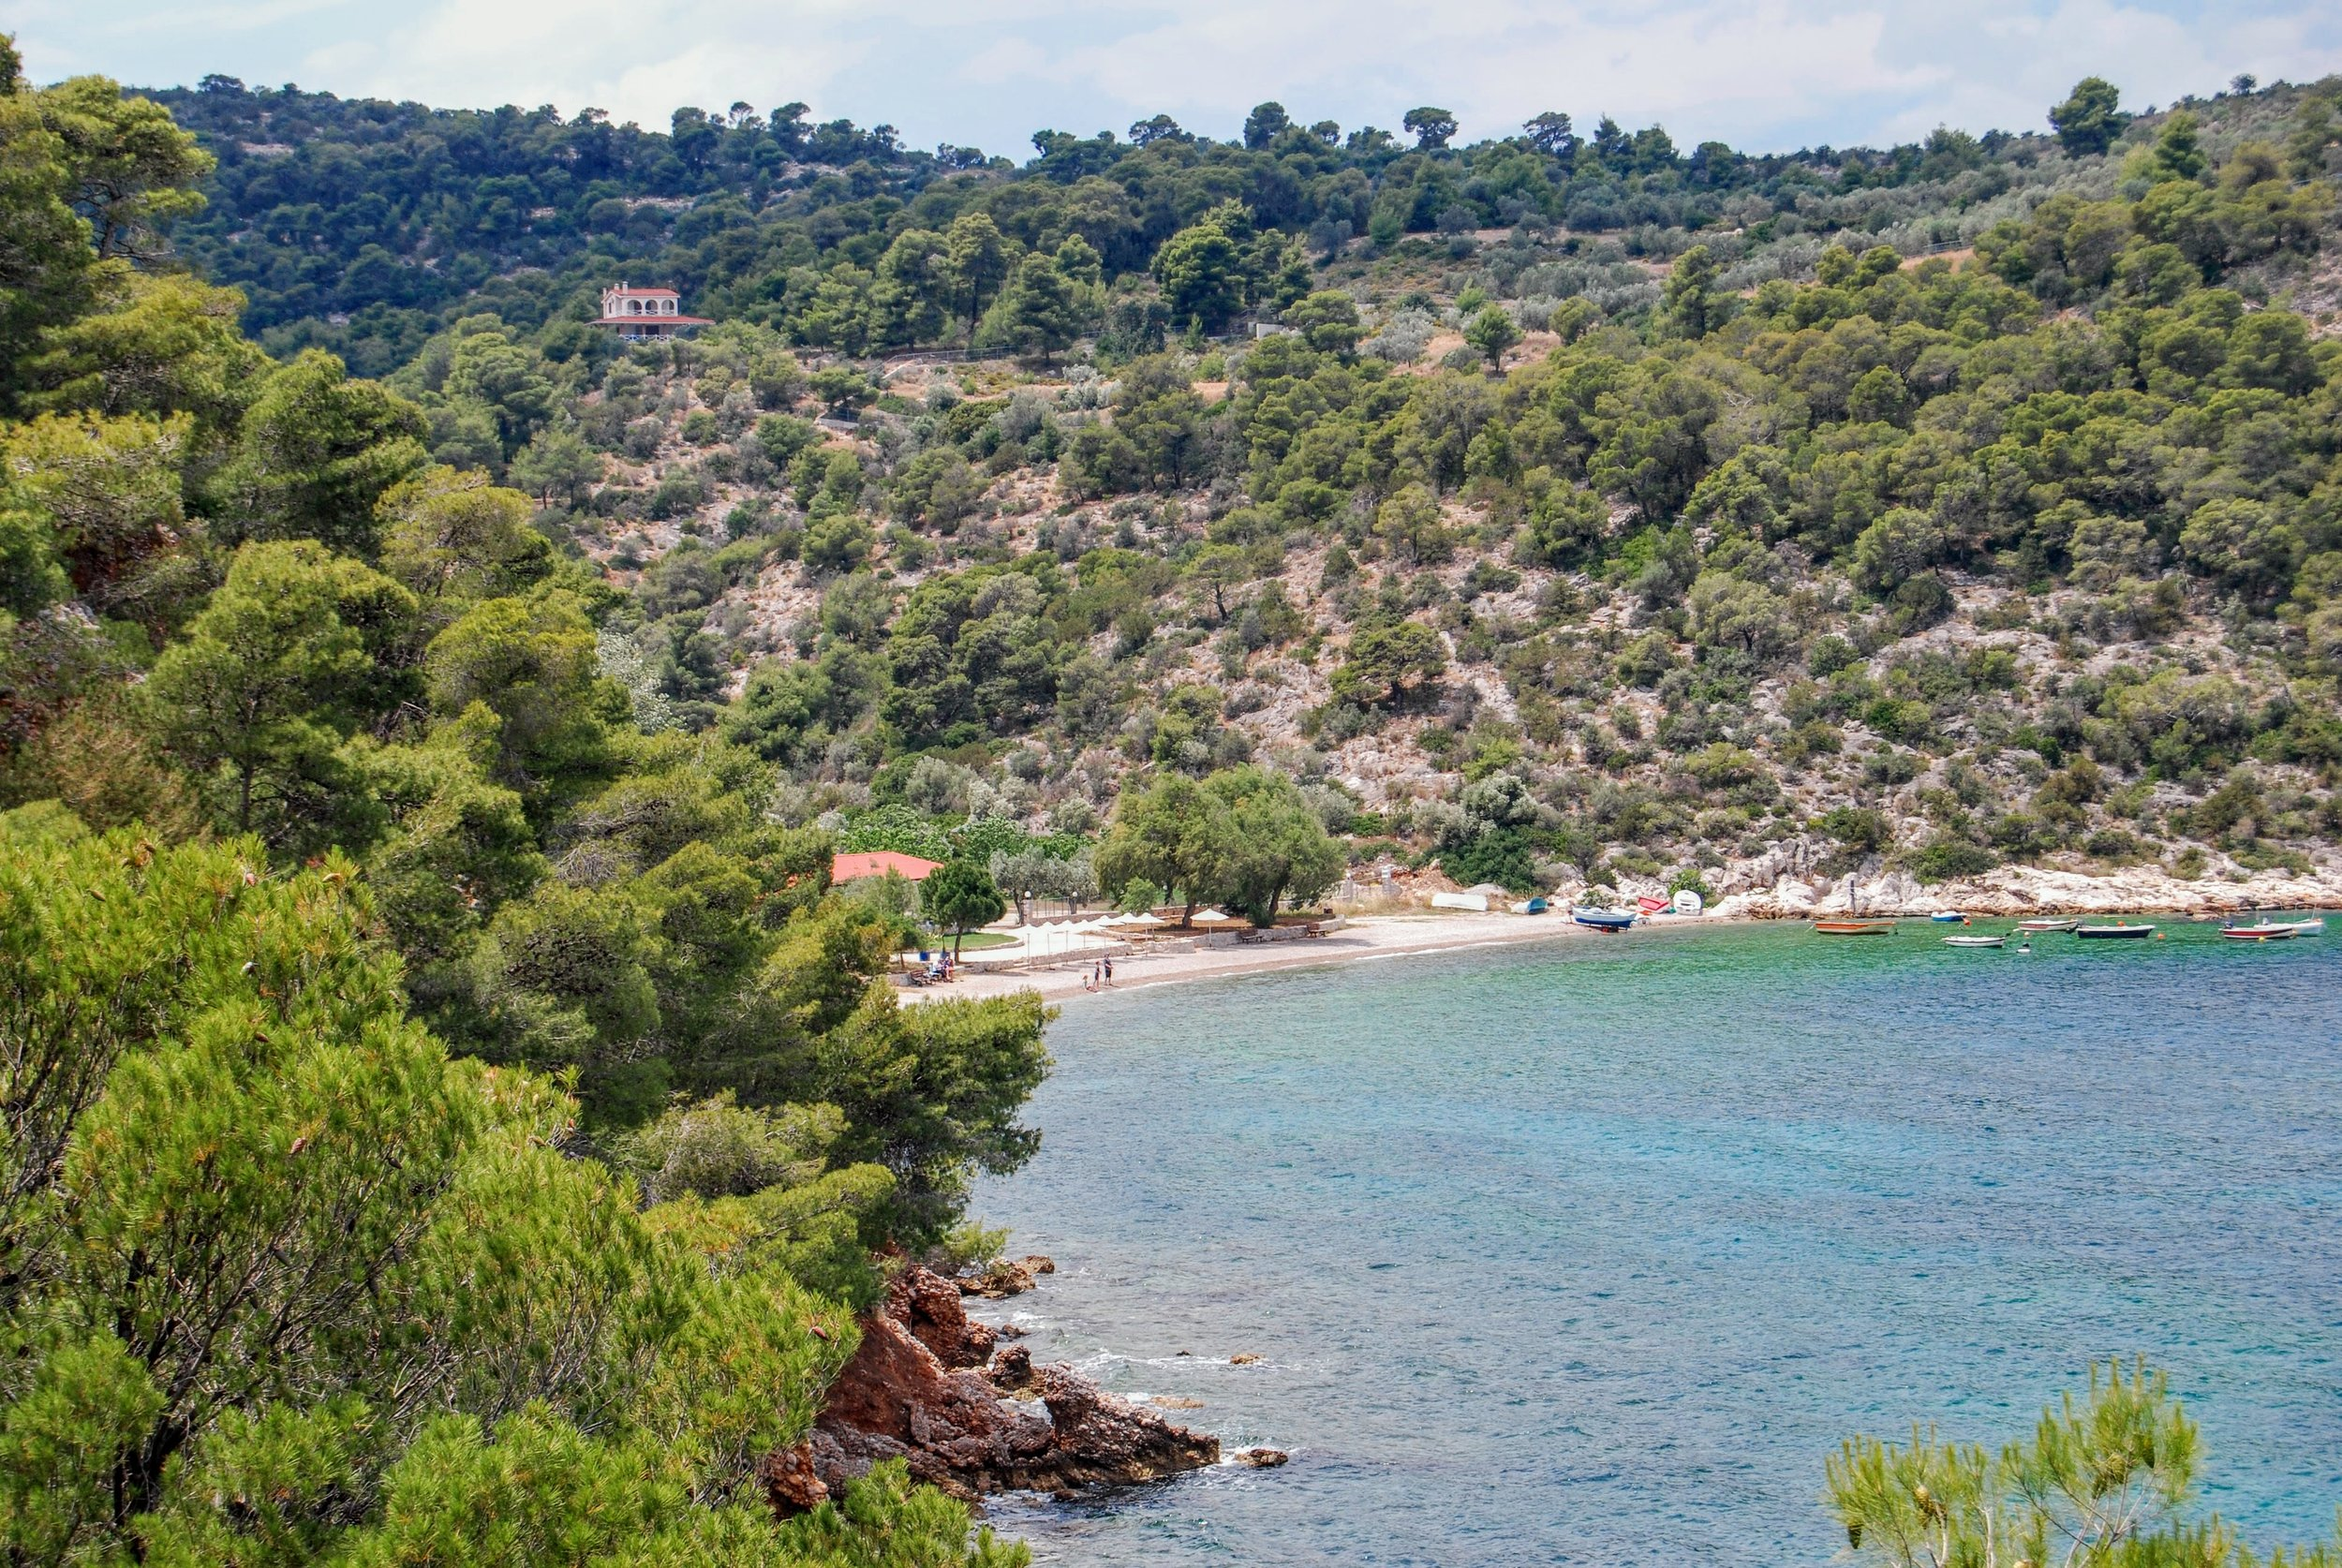 An idyllic, quiet beach in the village of Siderona. Has a fabulous fish taverna next to it as well.